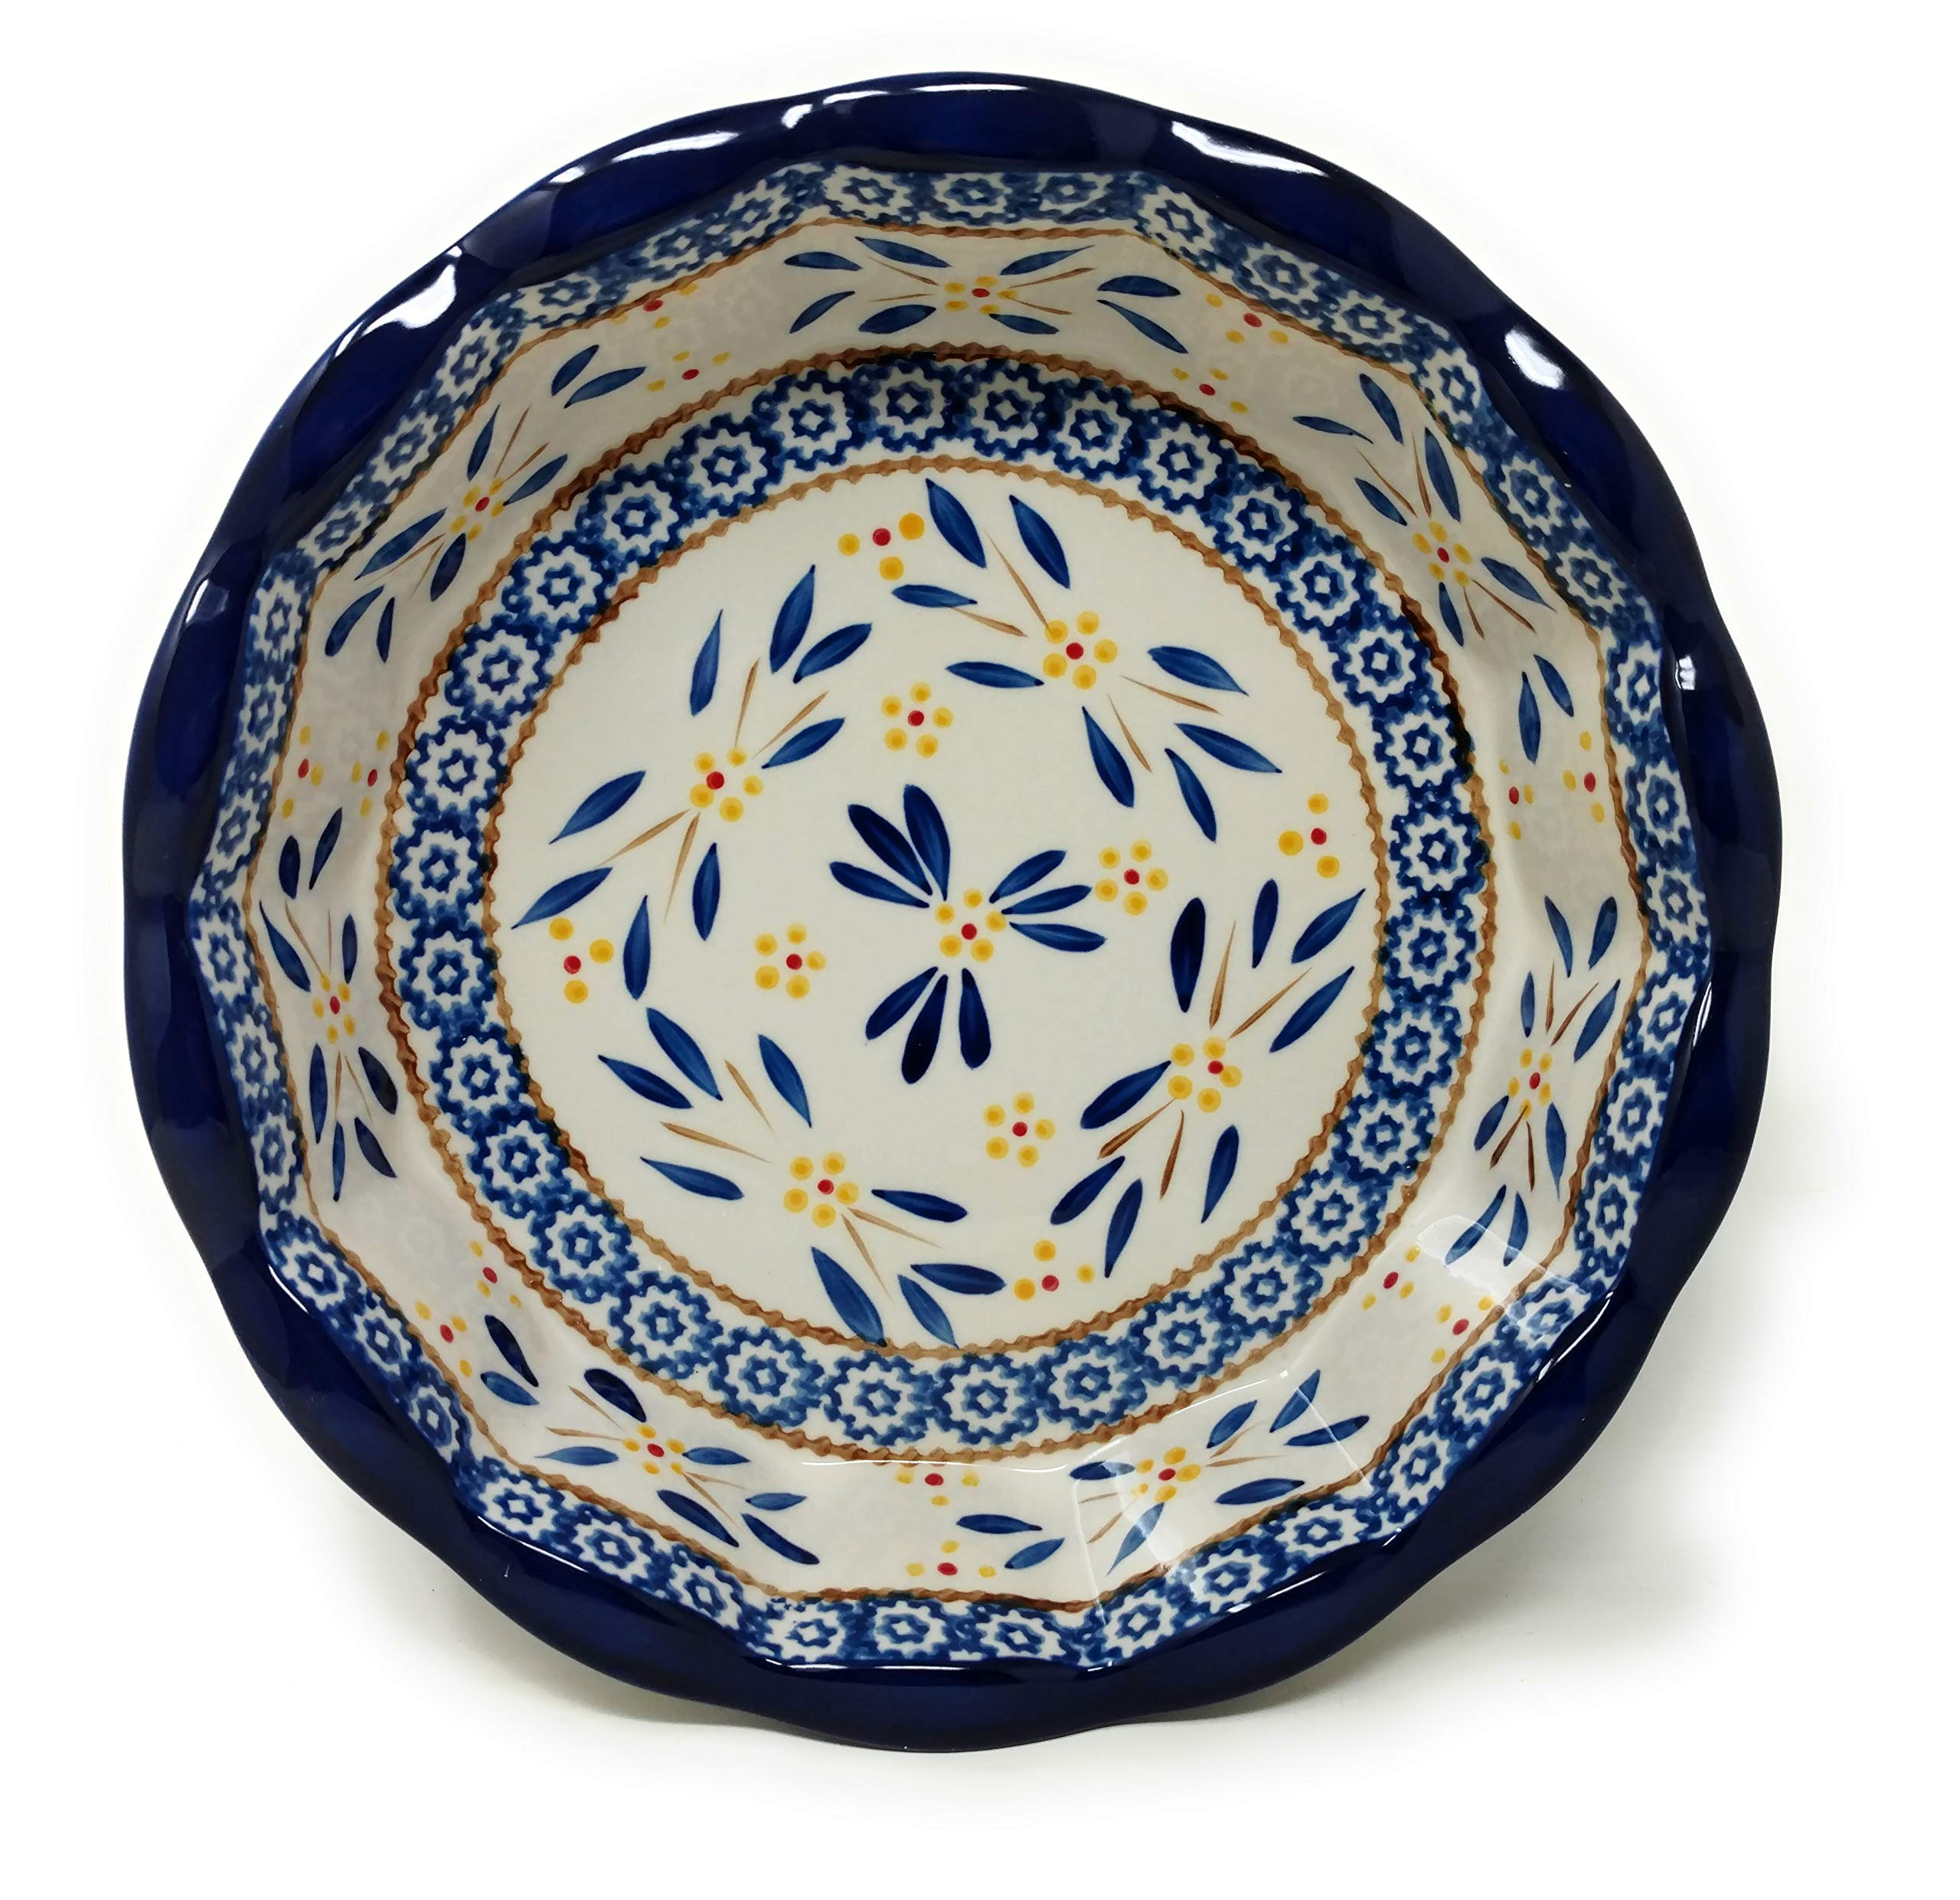 Temp-tations 10'' x 2.25'' Pie Pan w/Cover, Scalloped, Deep Dish Pizza or Quiche (Old World Blue) by Stoneware (Image #2)